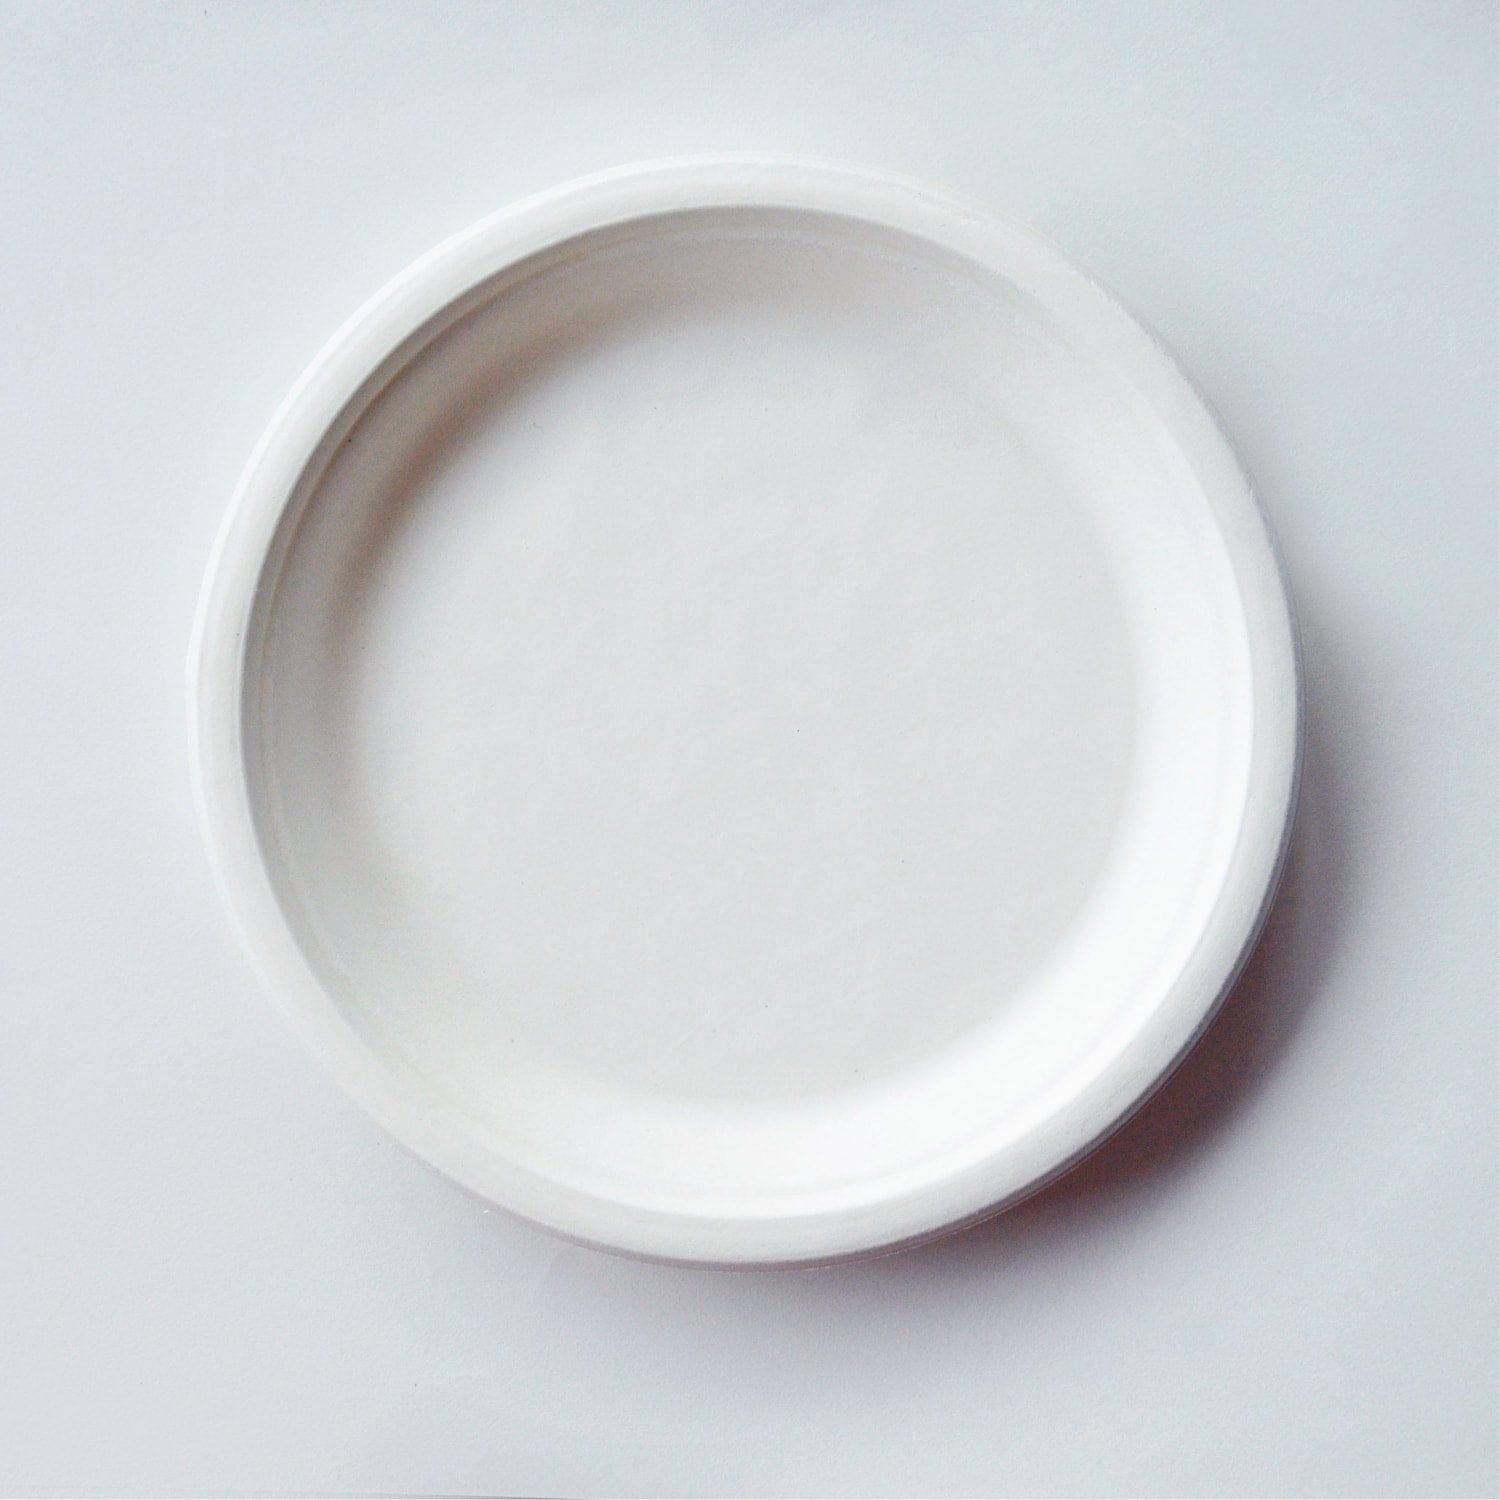 SLC 10 Inch Round Dinner Plate | Eco-friendly Disposable | Pack of 15 u2013 Southern Leaf Co. & SLC 10 Inch Round Dinner Plate | Eco-friendly Disposable | Pack of ...